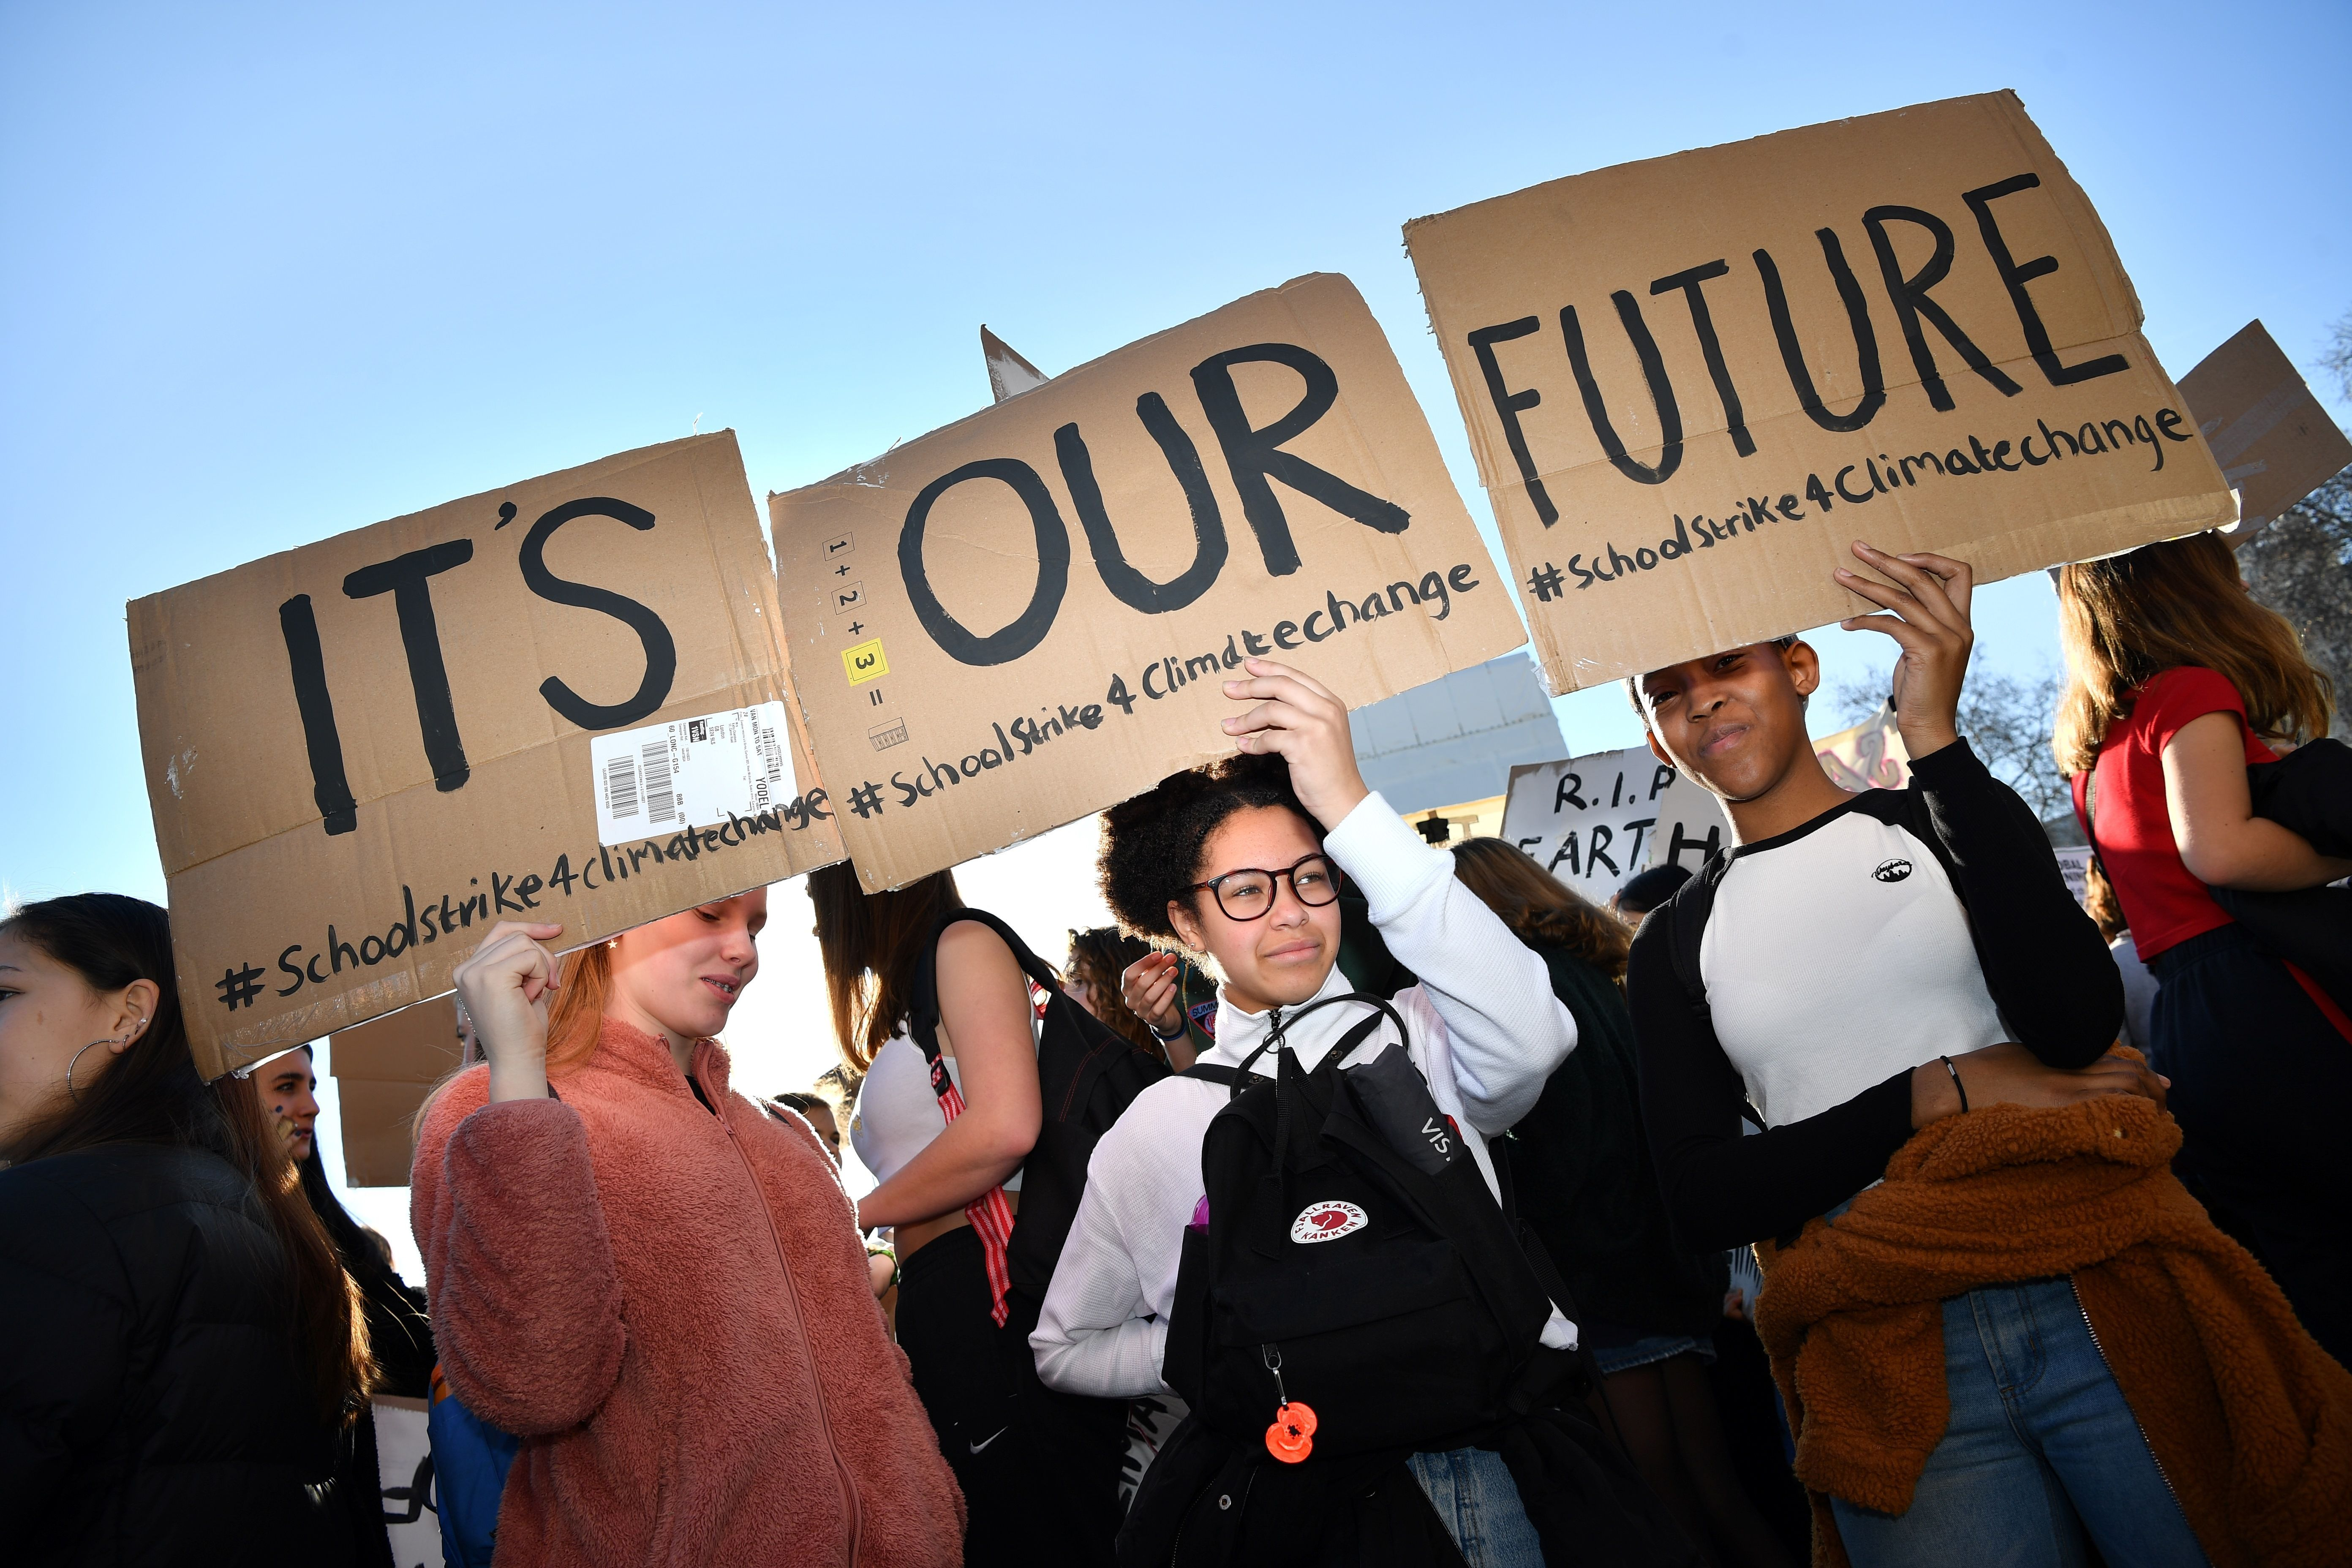 What You Need to Know About the Global Climate Strike